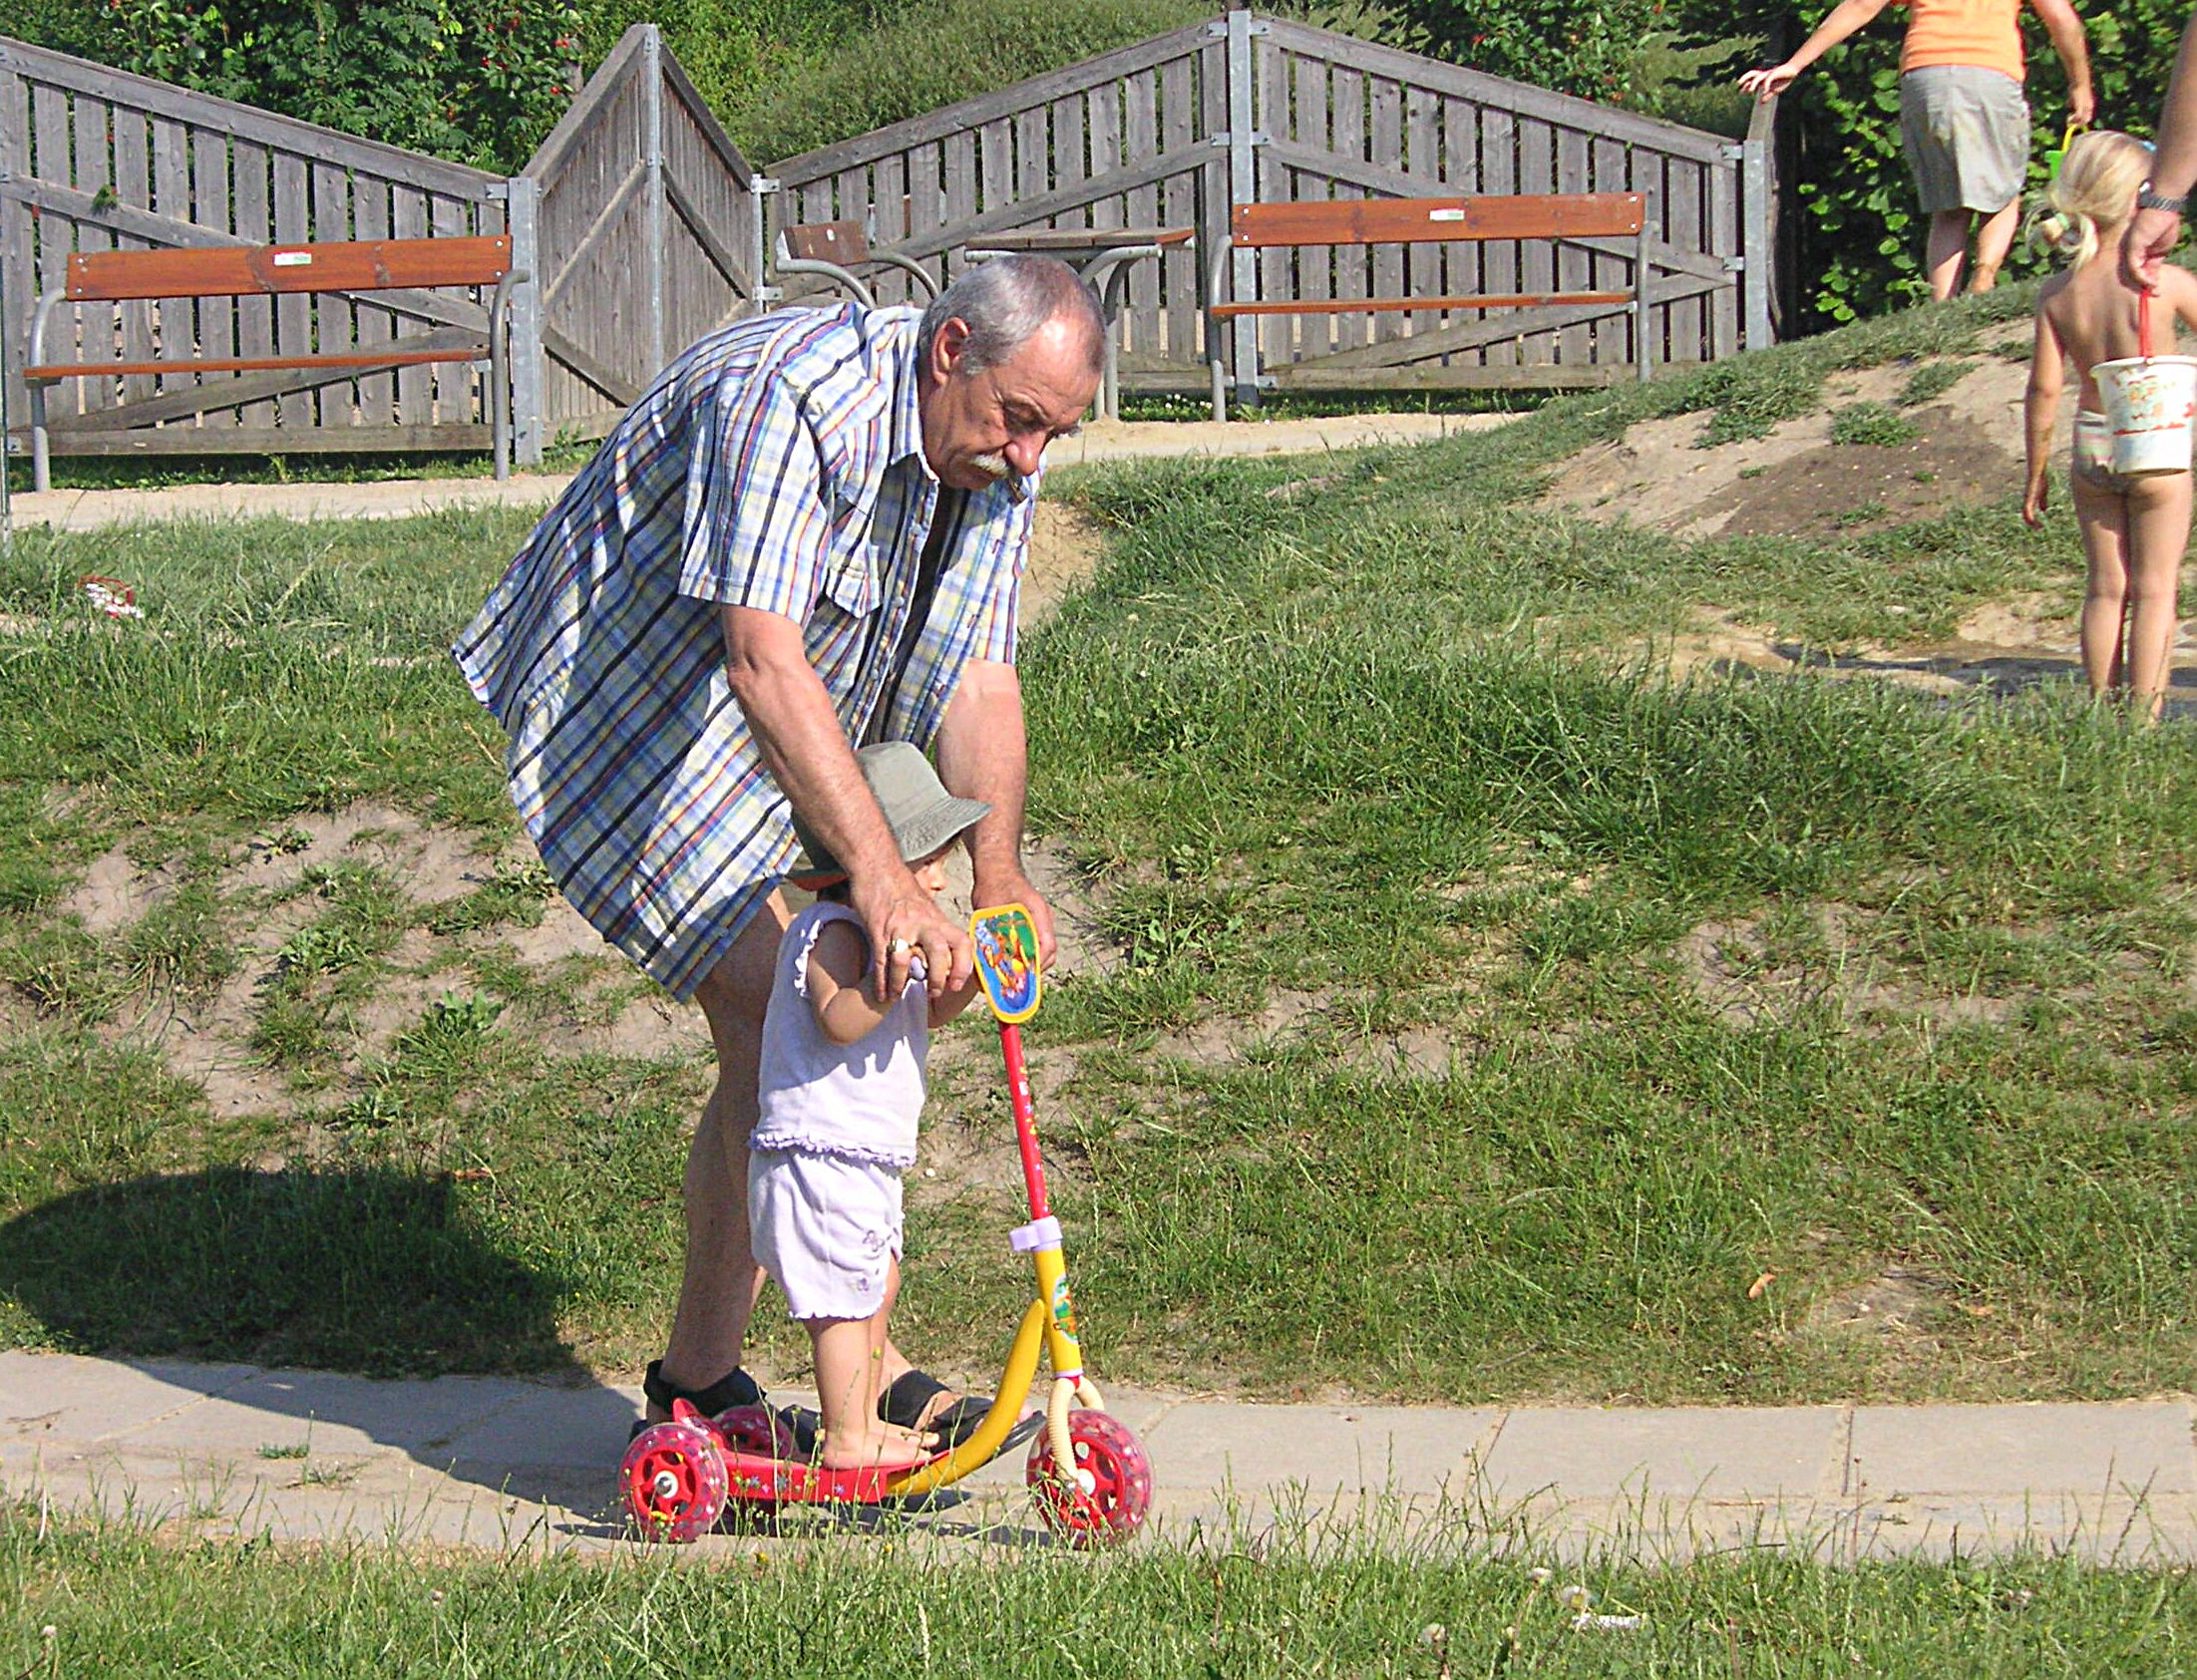 overcoming fear had to write a narrative essay about a personal  english a grandfather teaching his little granddaughter how to ride a kick scooter simmering